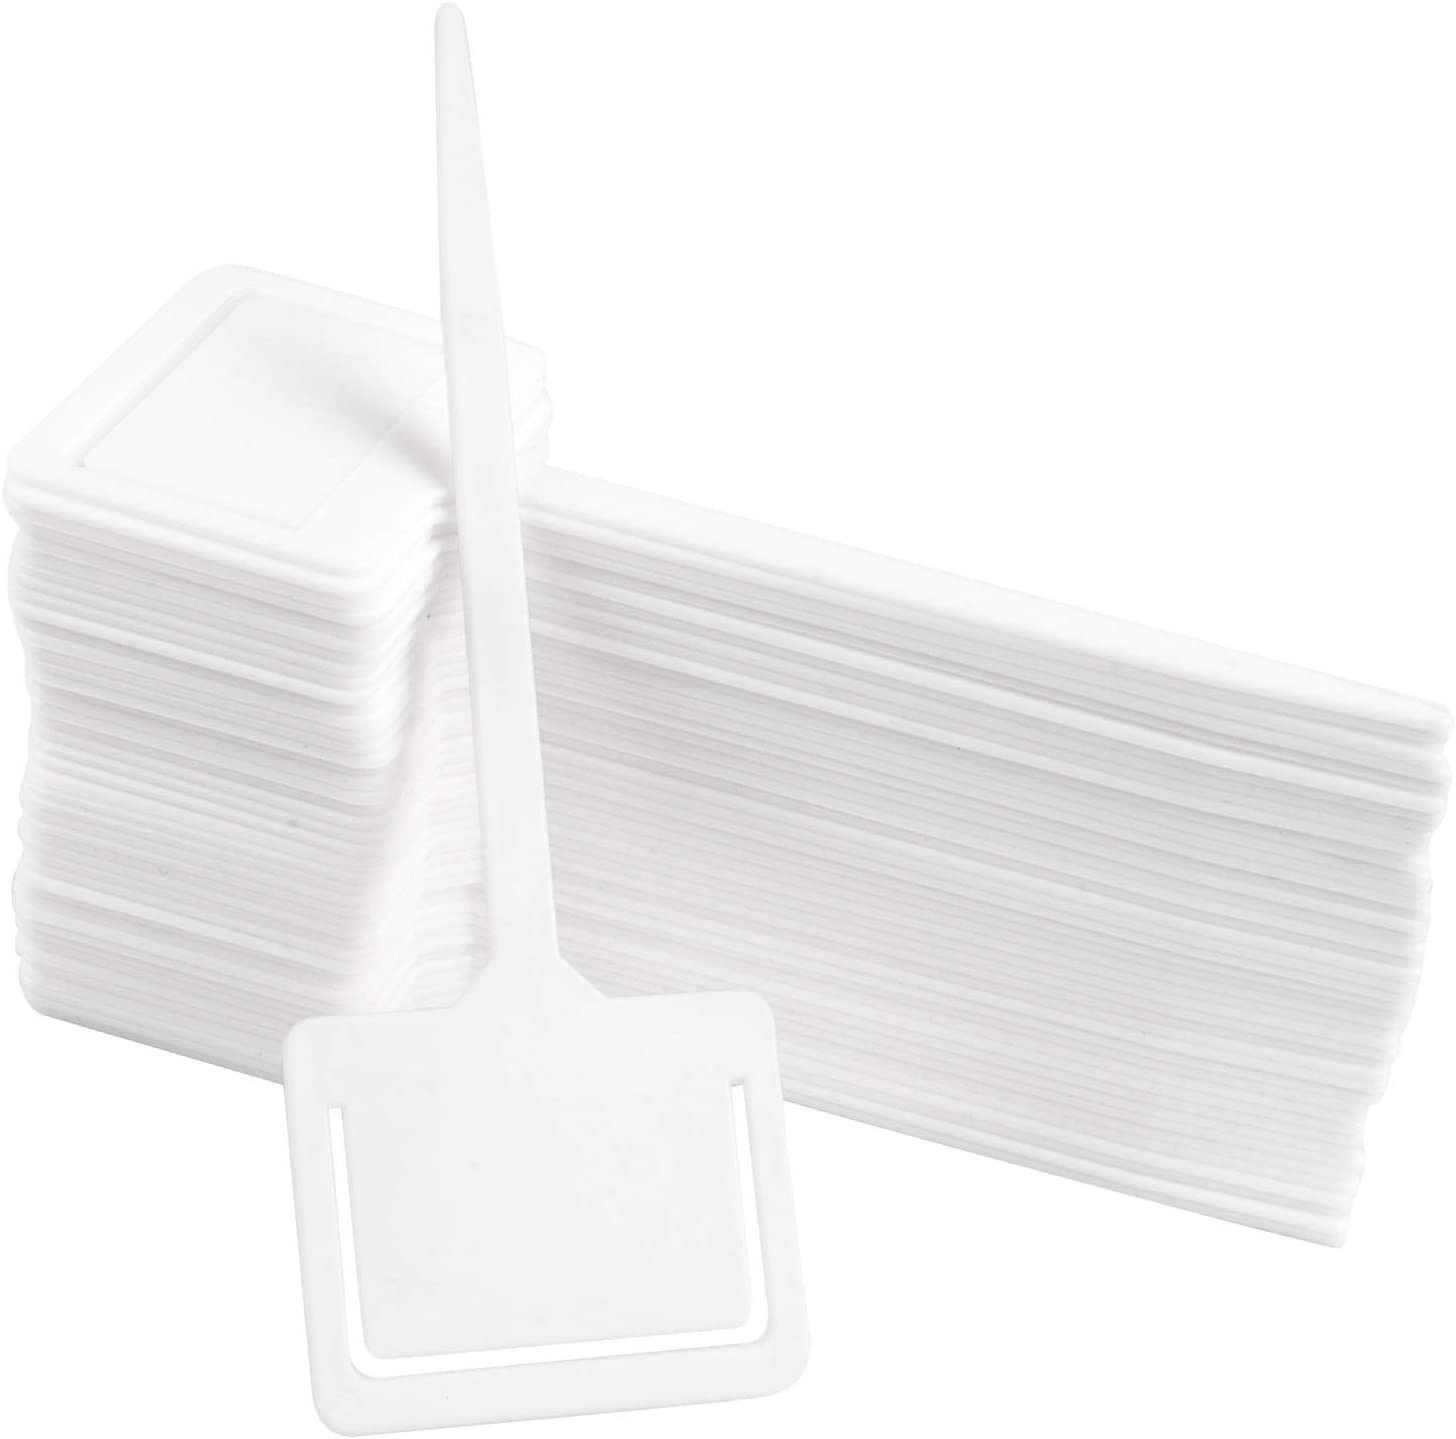 "45 Pcs Plant Markers, T-Type Garden Labels, Premium Waterproof Garden Marker for Outdoor Garden White 2.5""x7.2"""